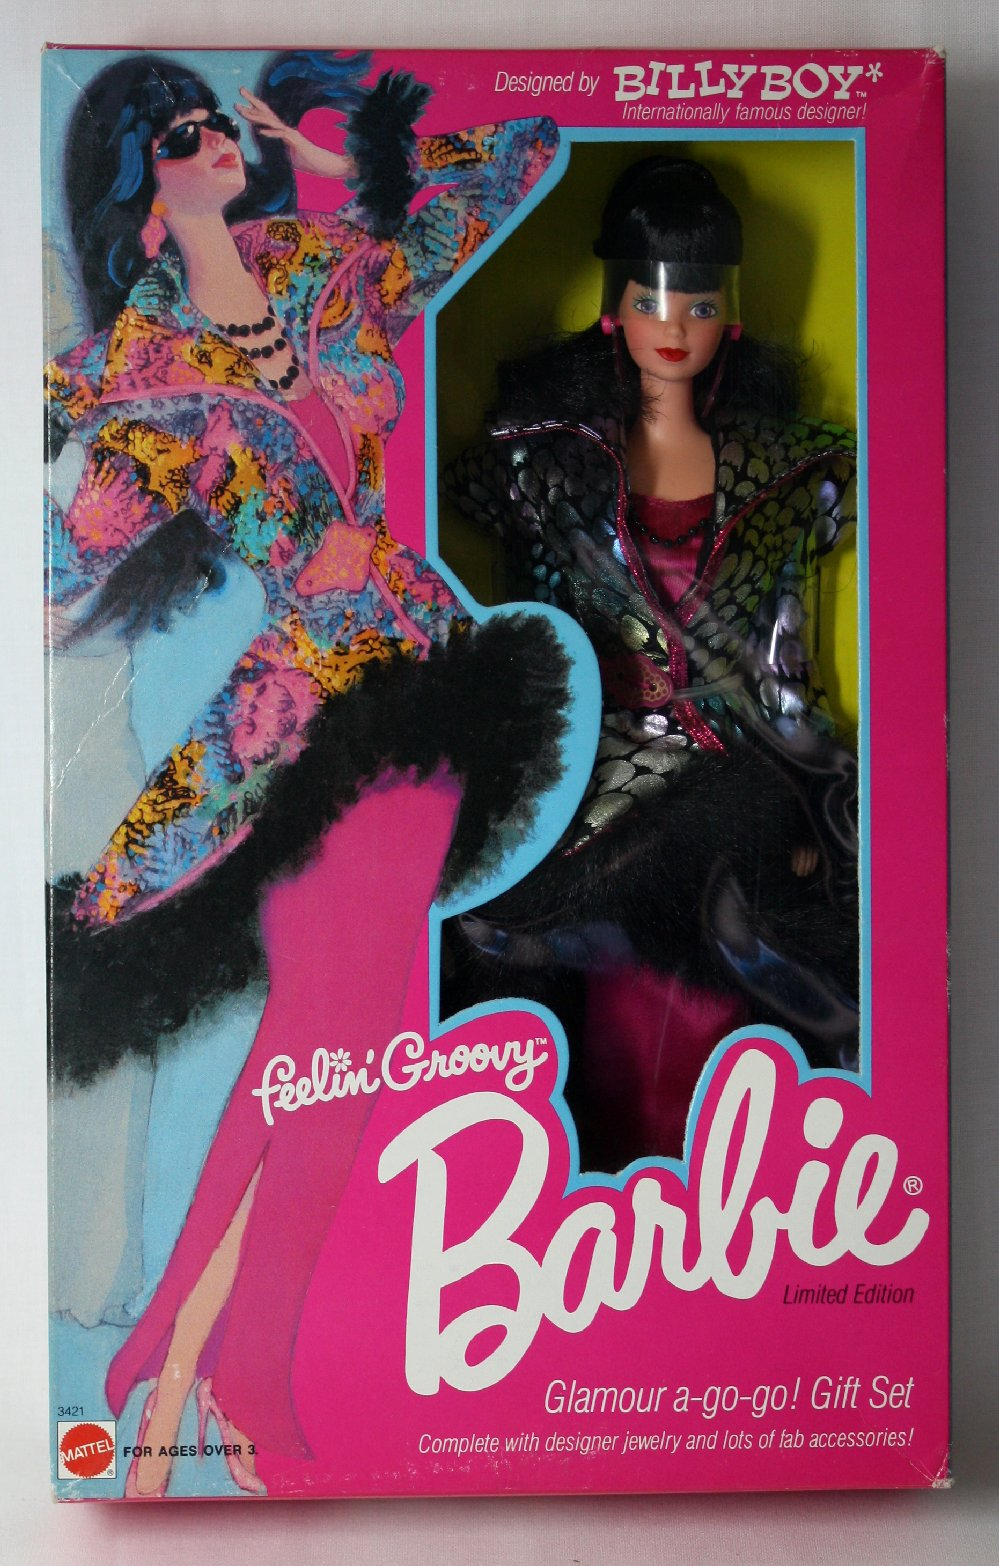 Feeling Groovy Barbie Glamour Doll by Billy Boy